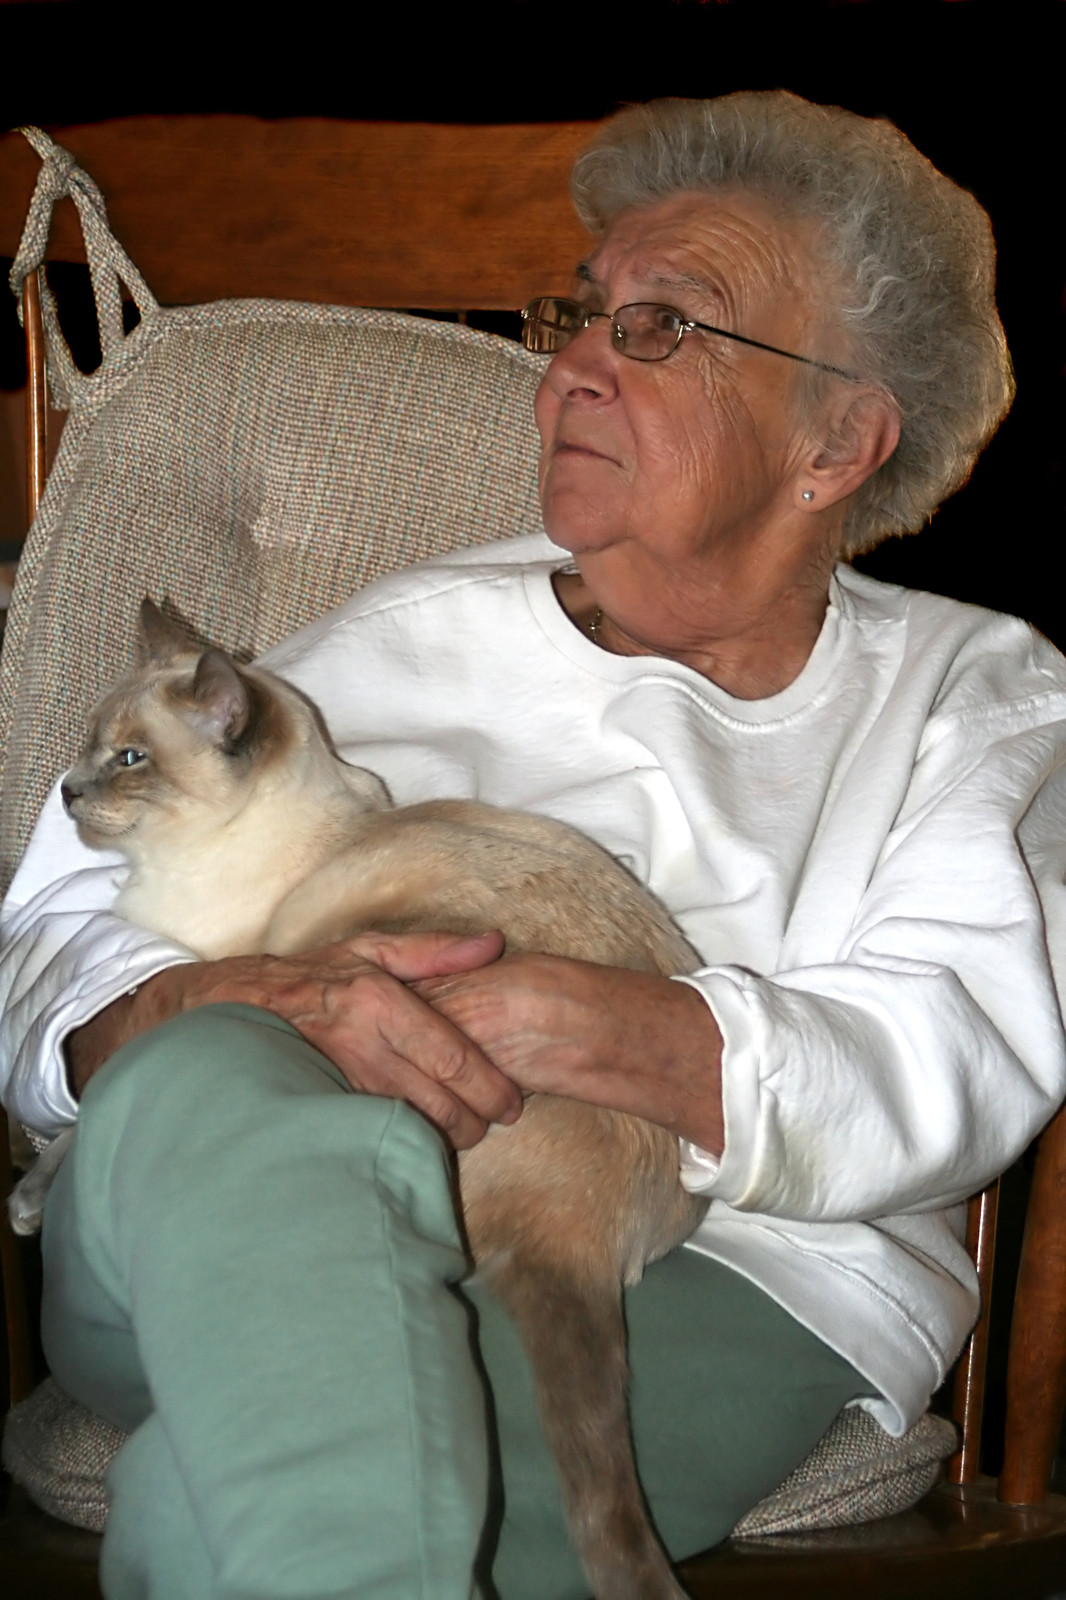 senior woman holding cat-canstockphoto10265807